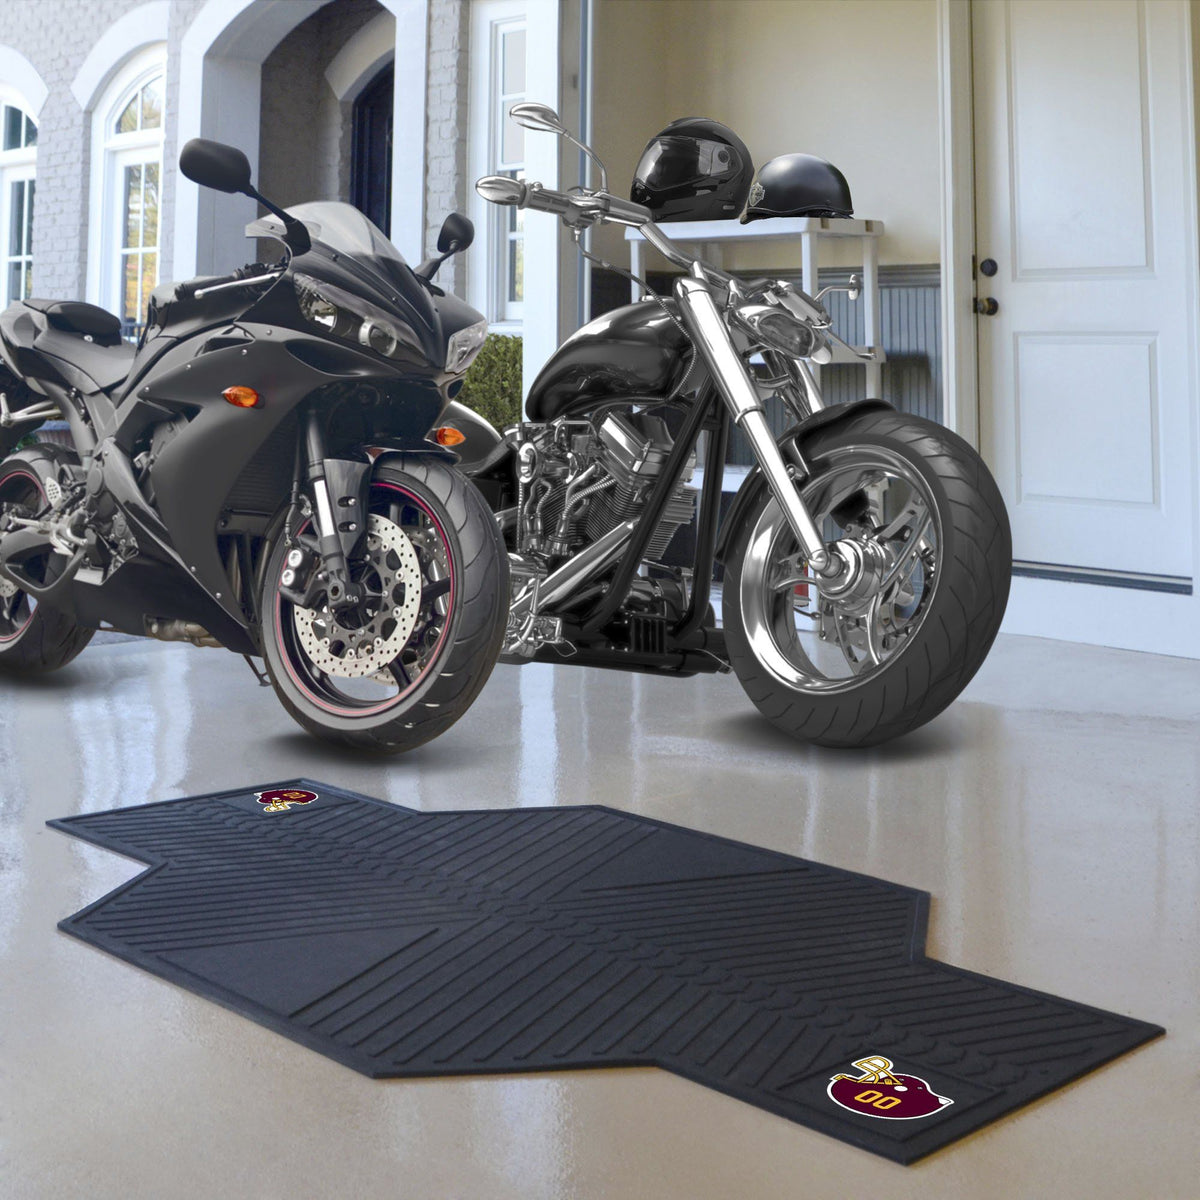 "NFL - Motorcycle Mat, 82.5"" x 42"" NFL Mats, Motorcycle Accessory, Motorcycle Mat, NFL, Auto Fan Mats Washington Redskins"